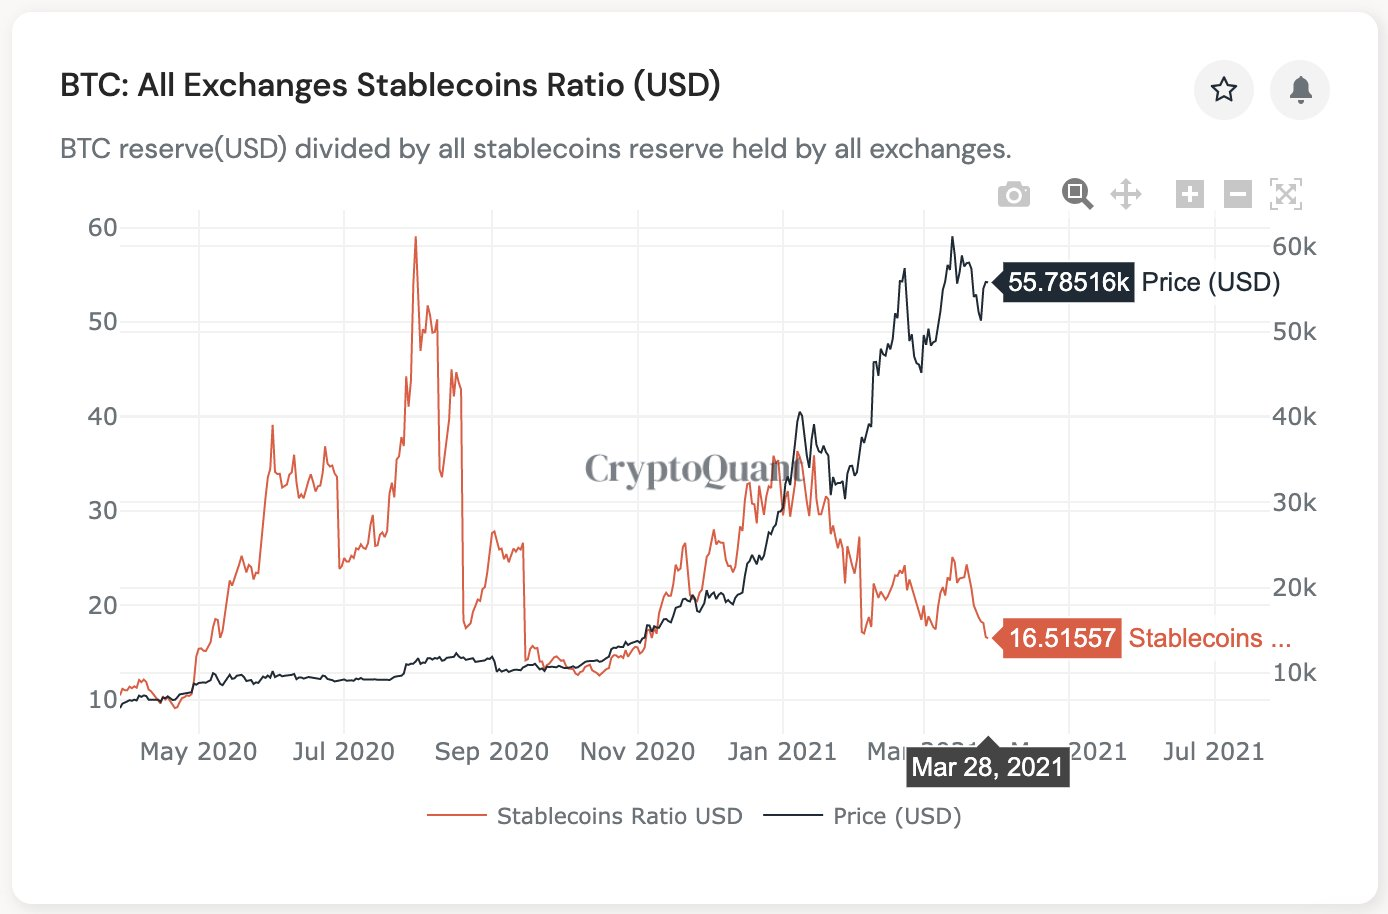 Exchange stablecoin ratio